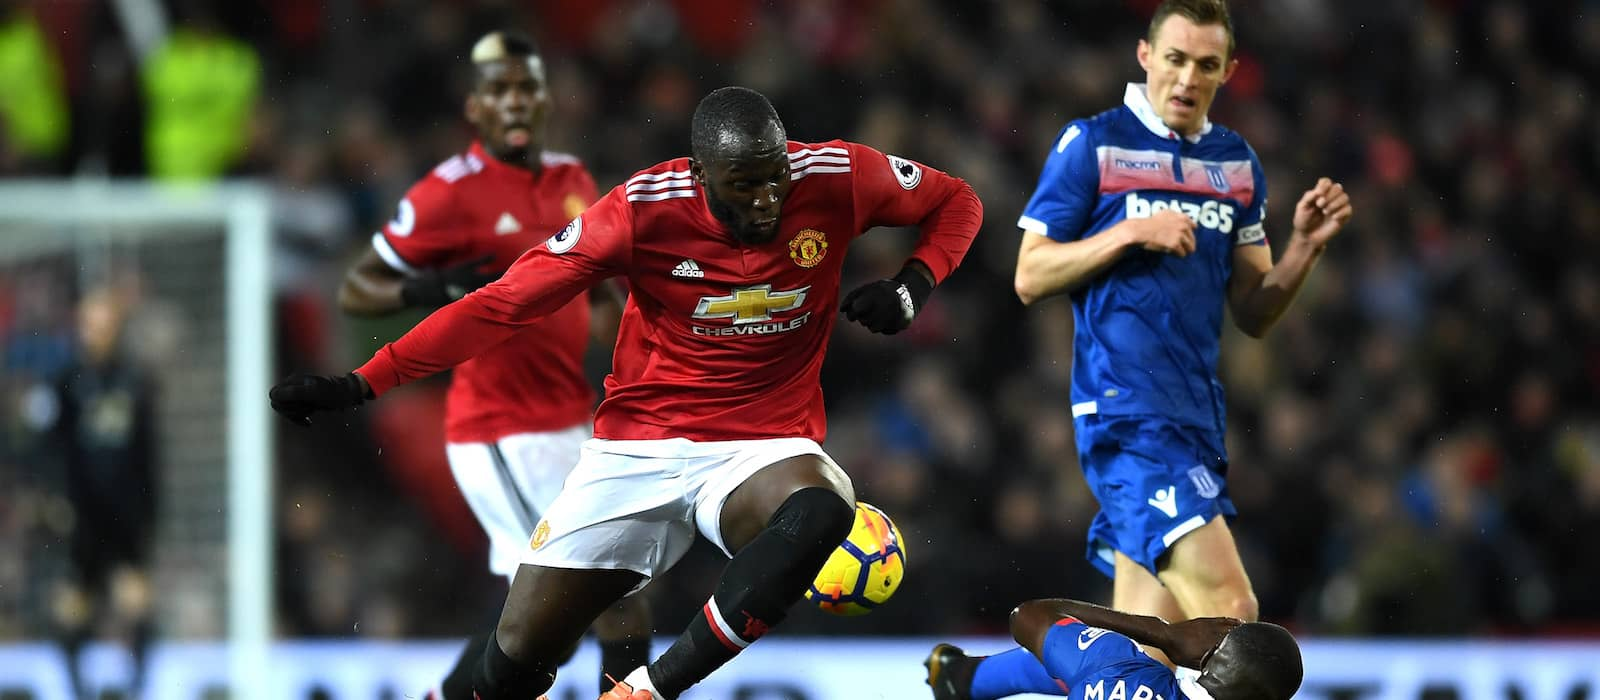 Dwight Yorke: Romelu Lukaku was the right buy for Manchester United